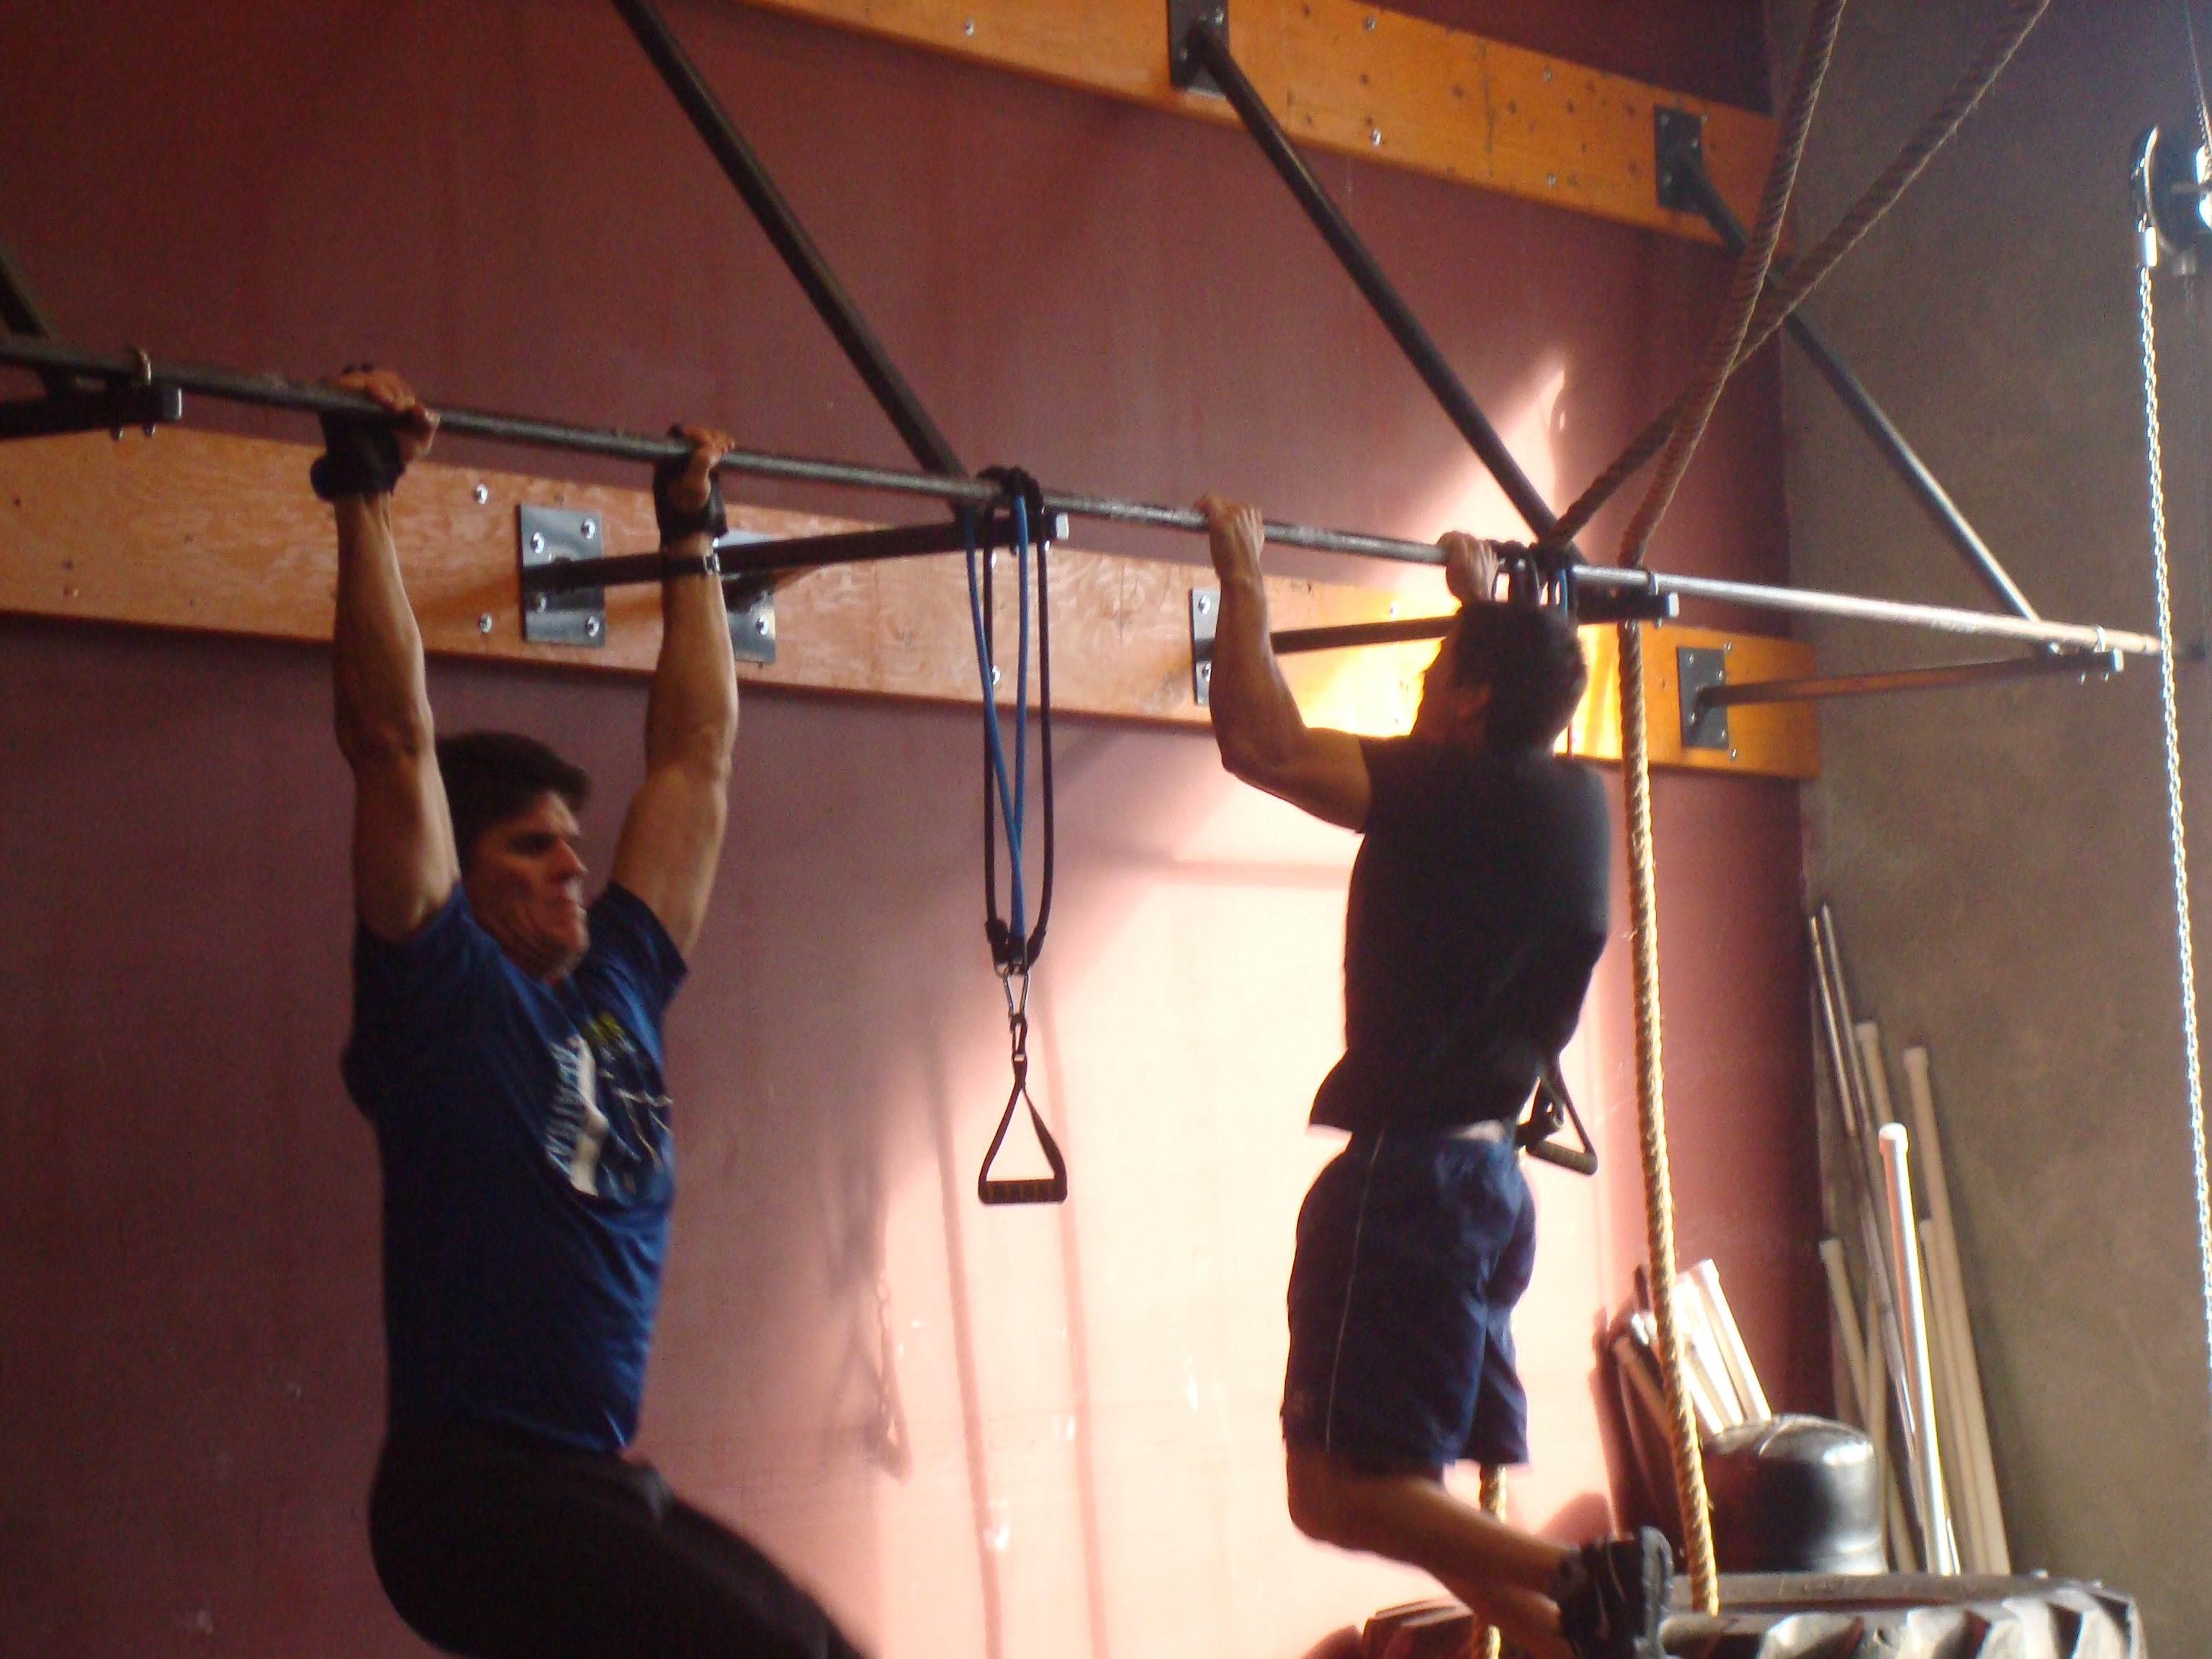 kalei and marco doing 100 pull ups of angie crossfit force